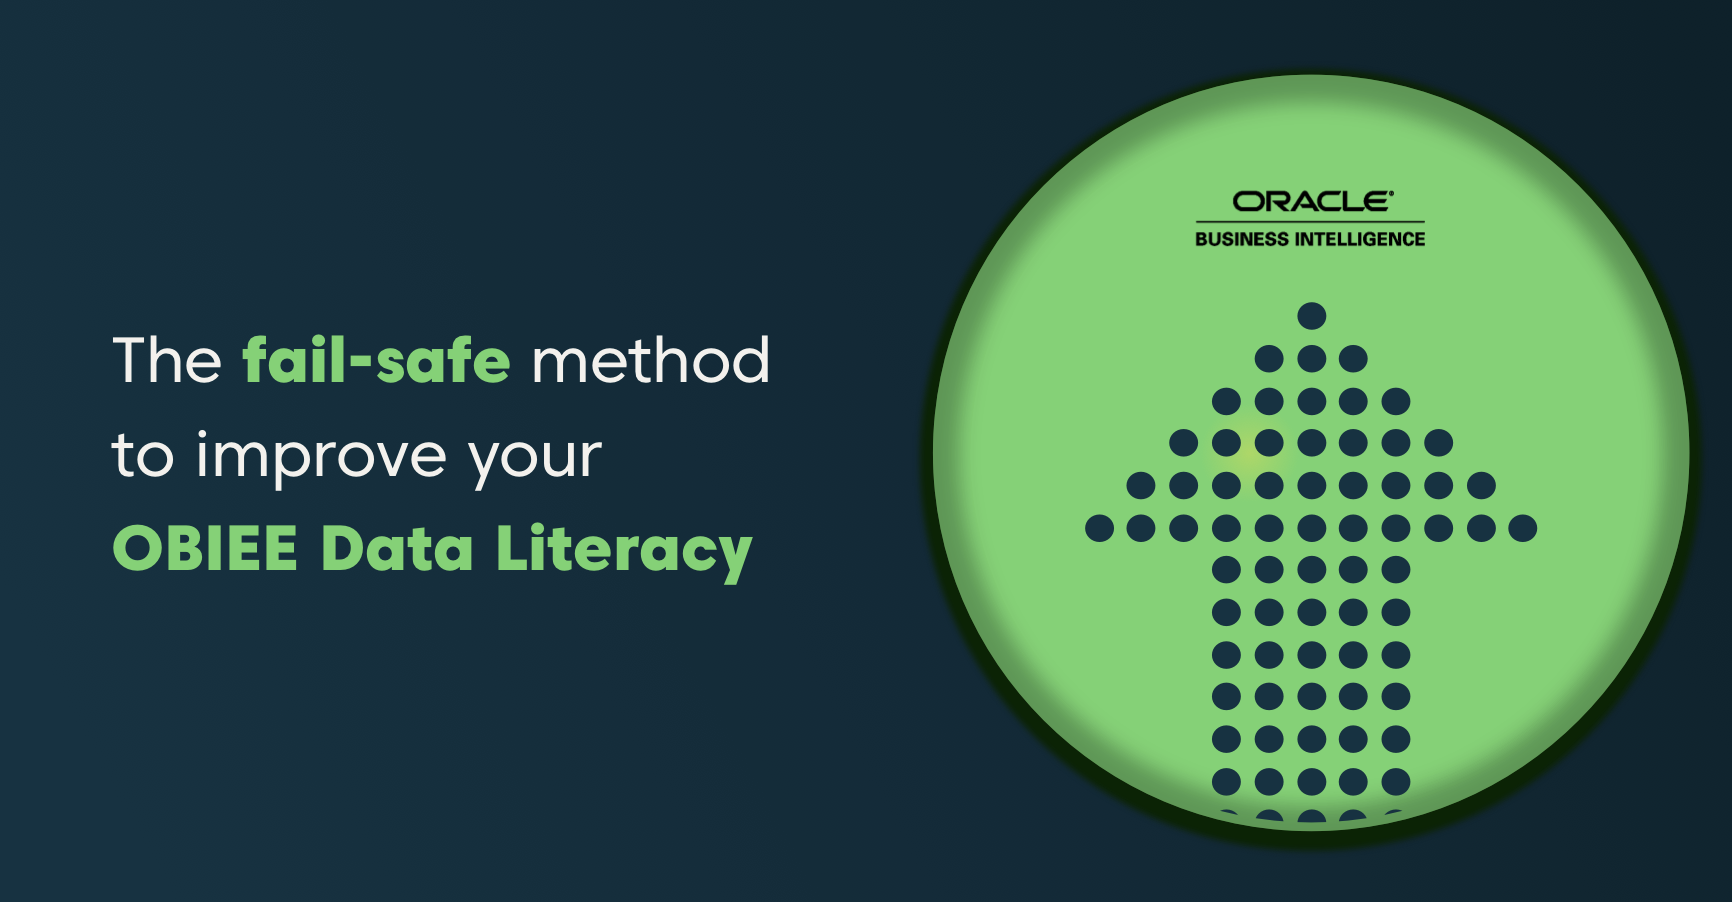 OBIEE data literacy